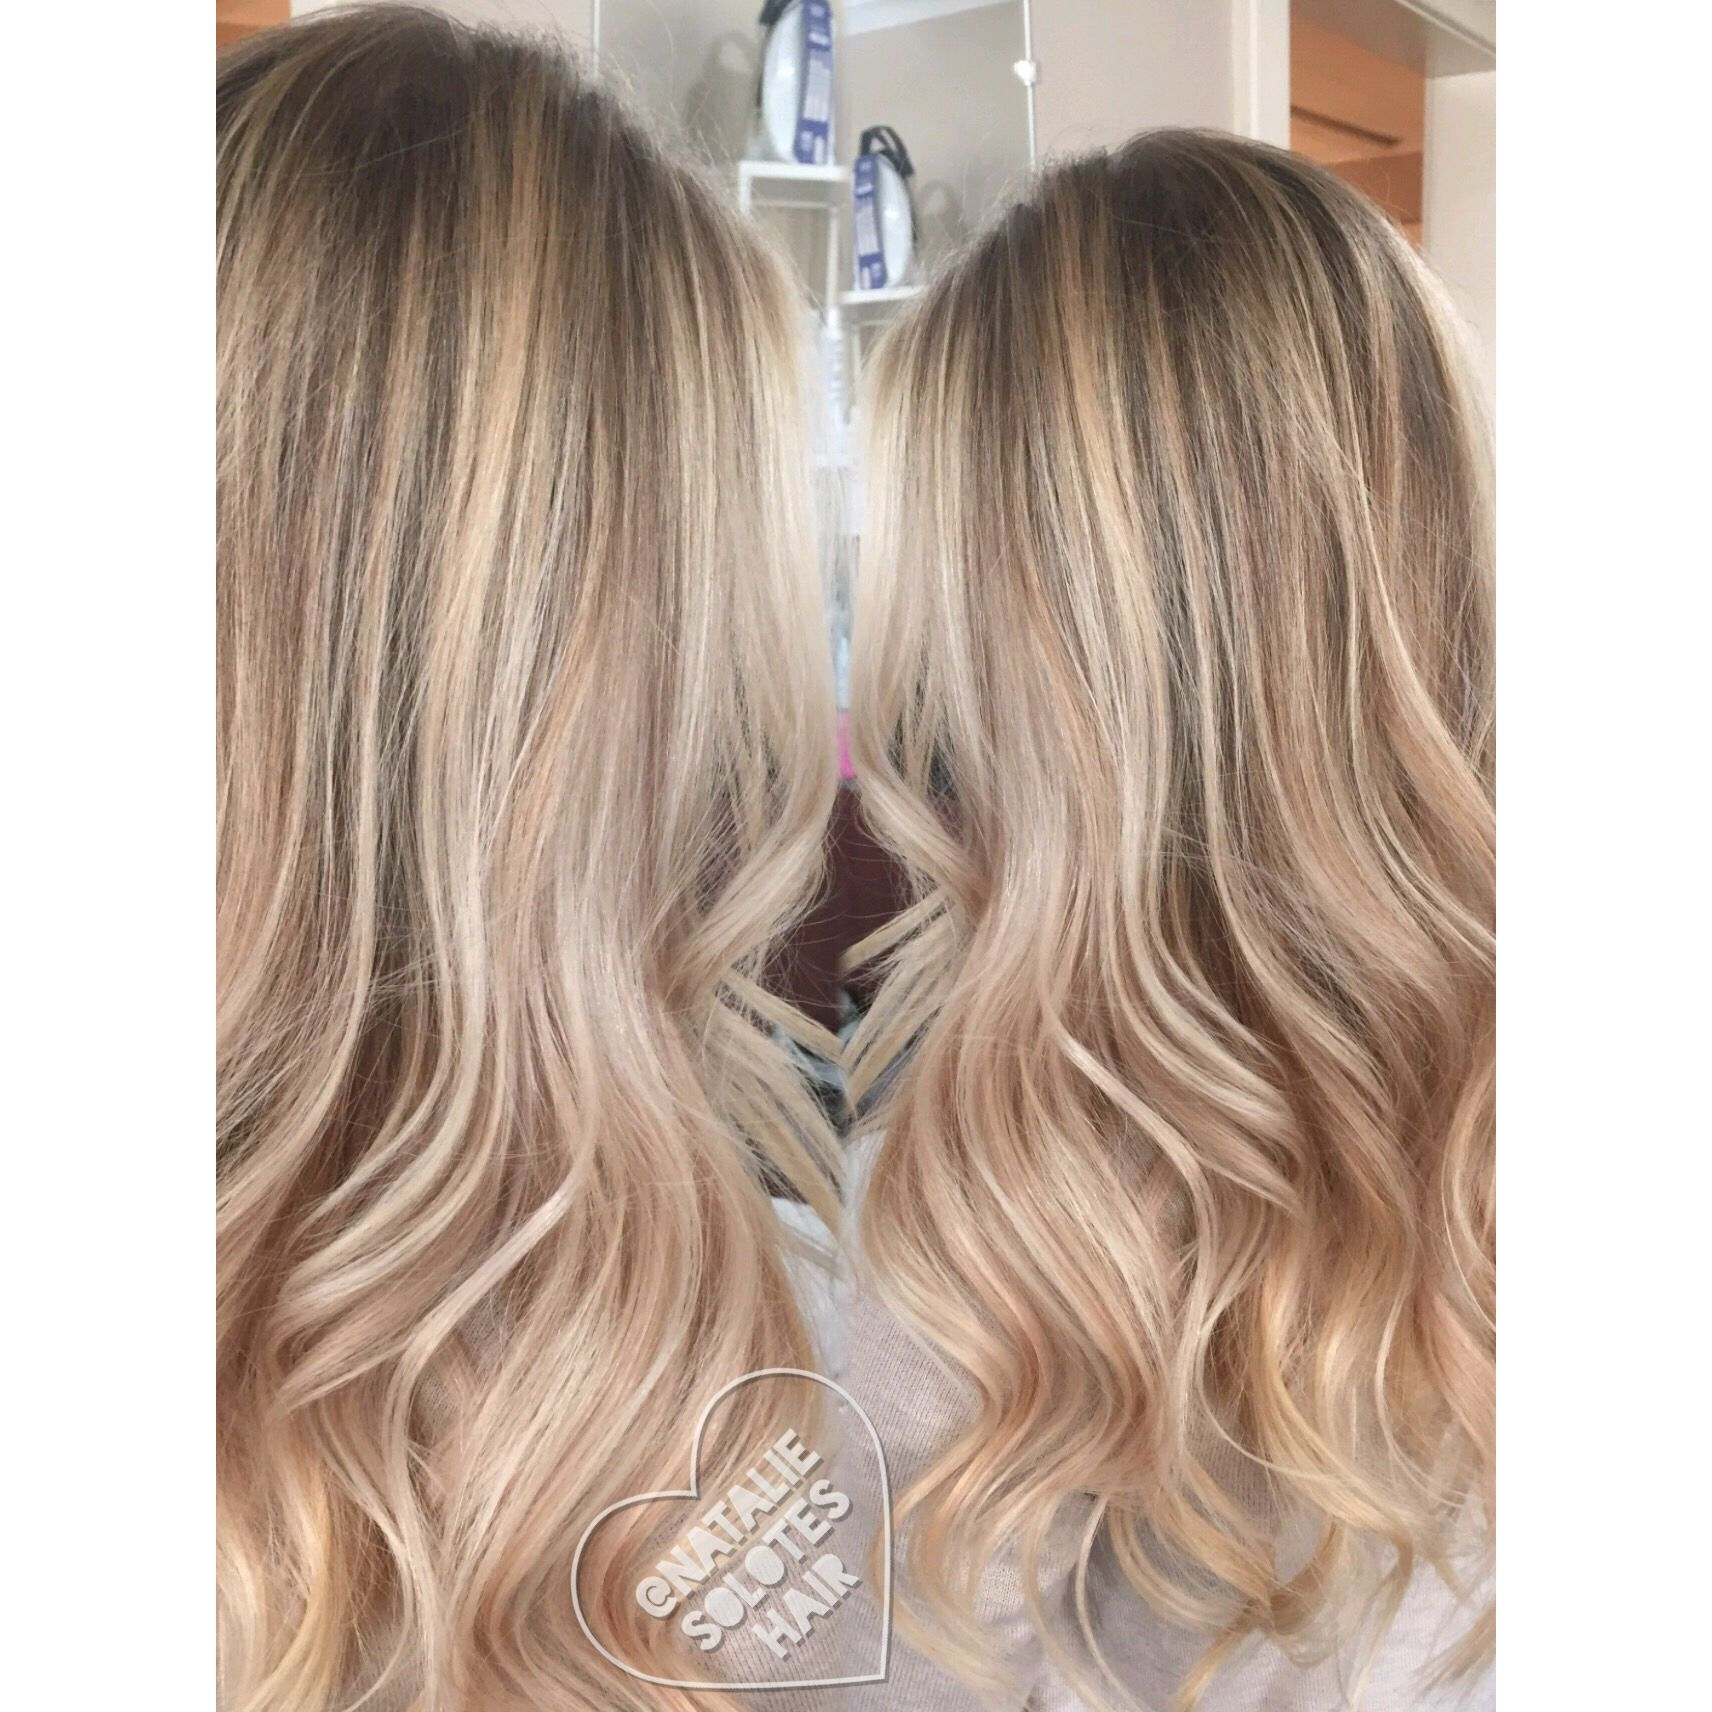 Behind the chair hair color - Rose Gold Blonde Soft Baby Fine Highlights Babylights Balayage Gorgeous Long Hair Natural Looking Behind The